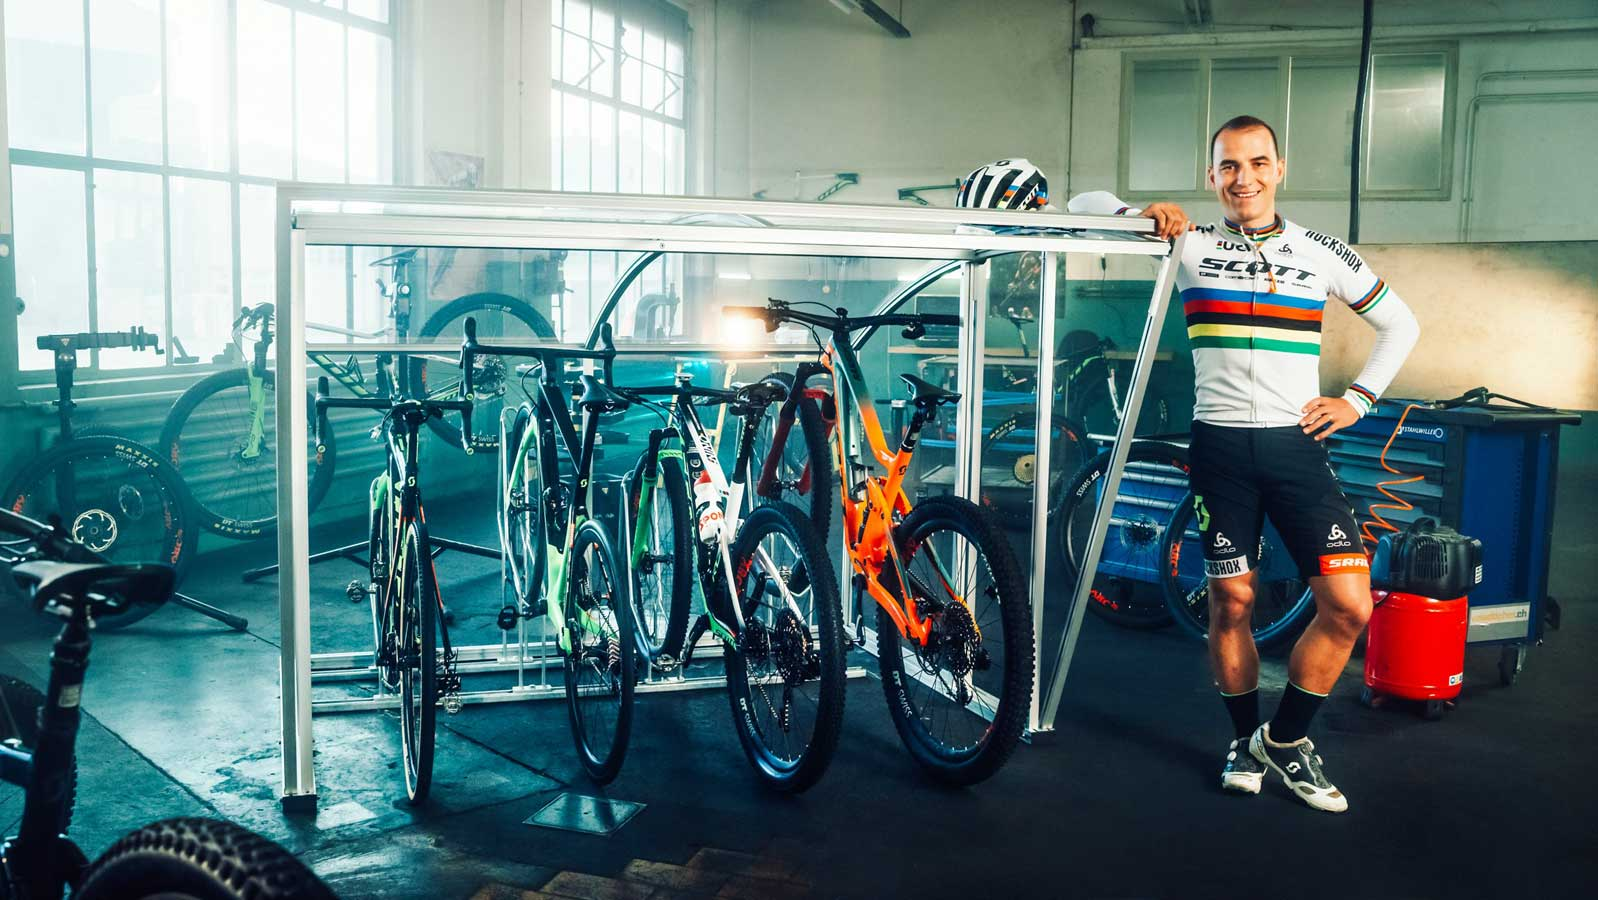 Bicycle shelter from Velopa, presented by Nino Schurter